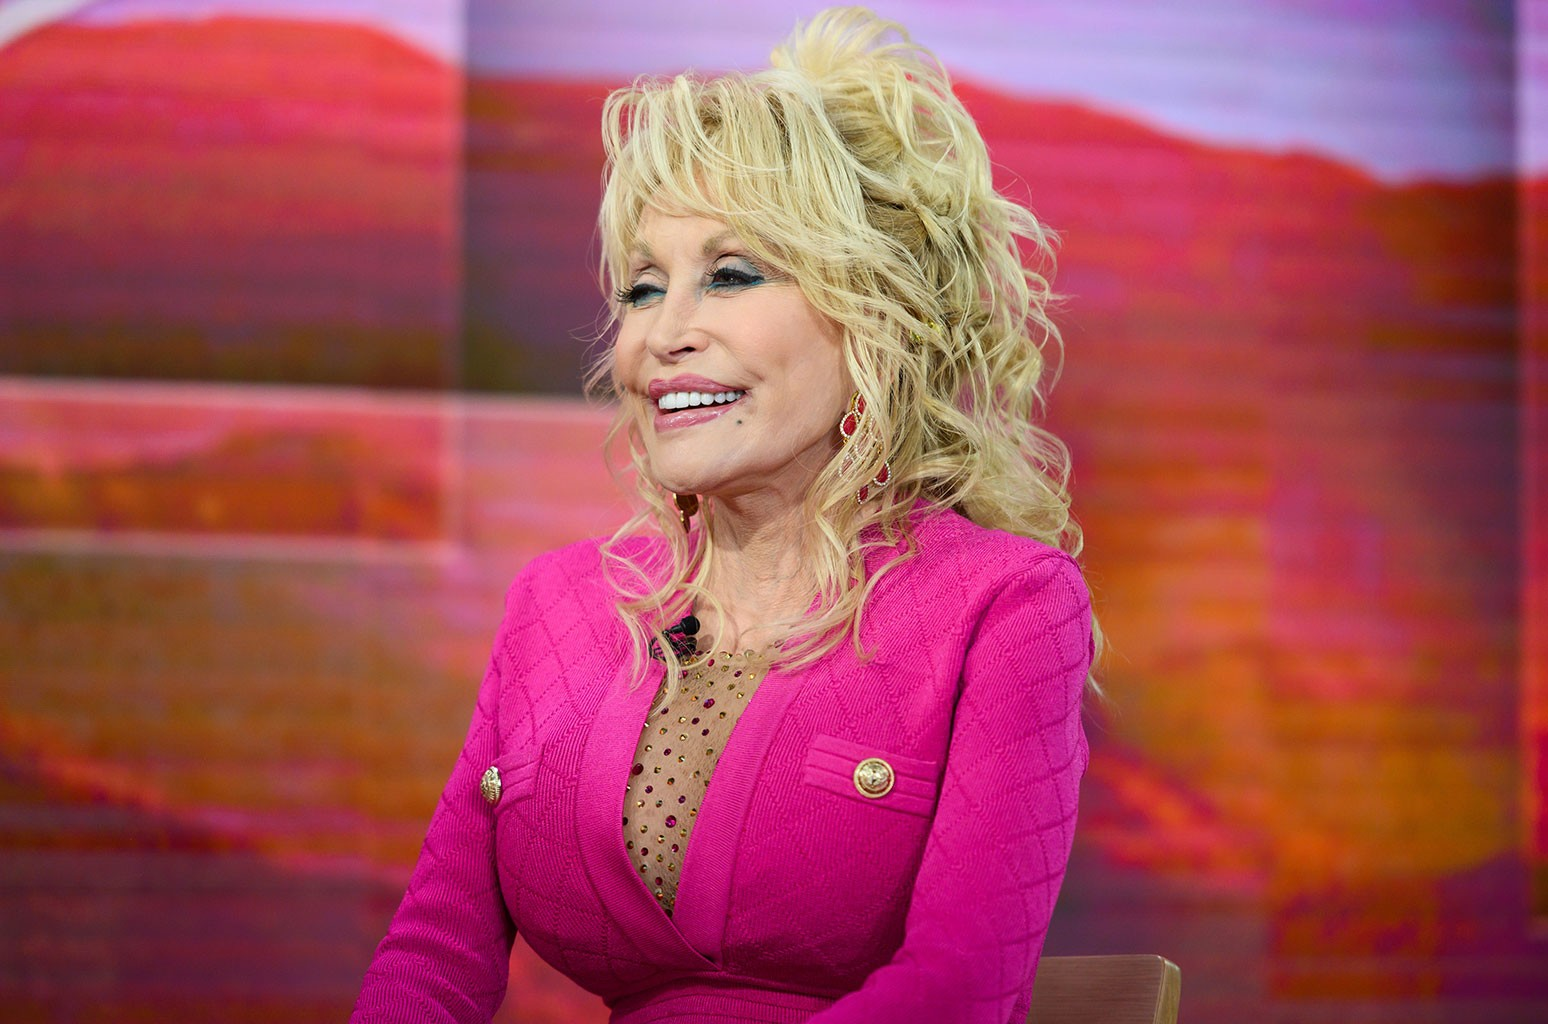 Dolly Parton and Businesses Raise $700K For Tennessee Flood Relief